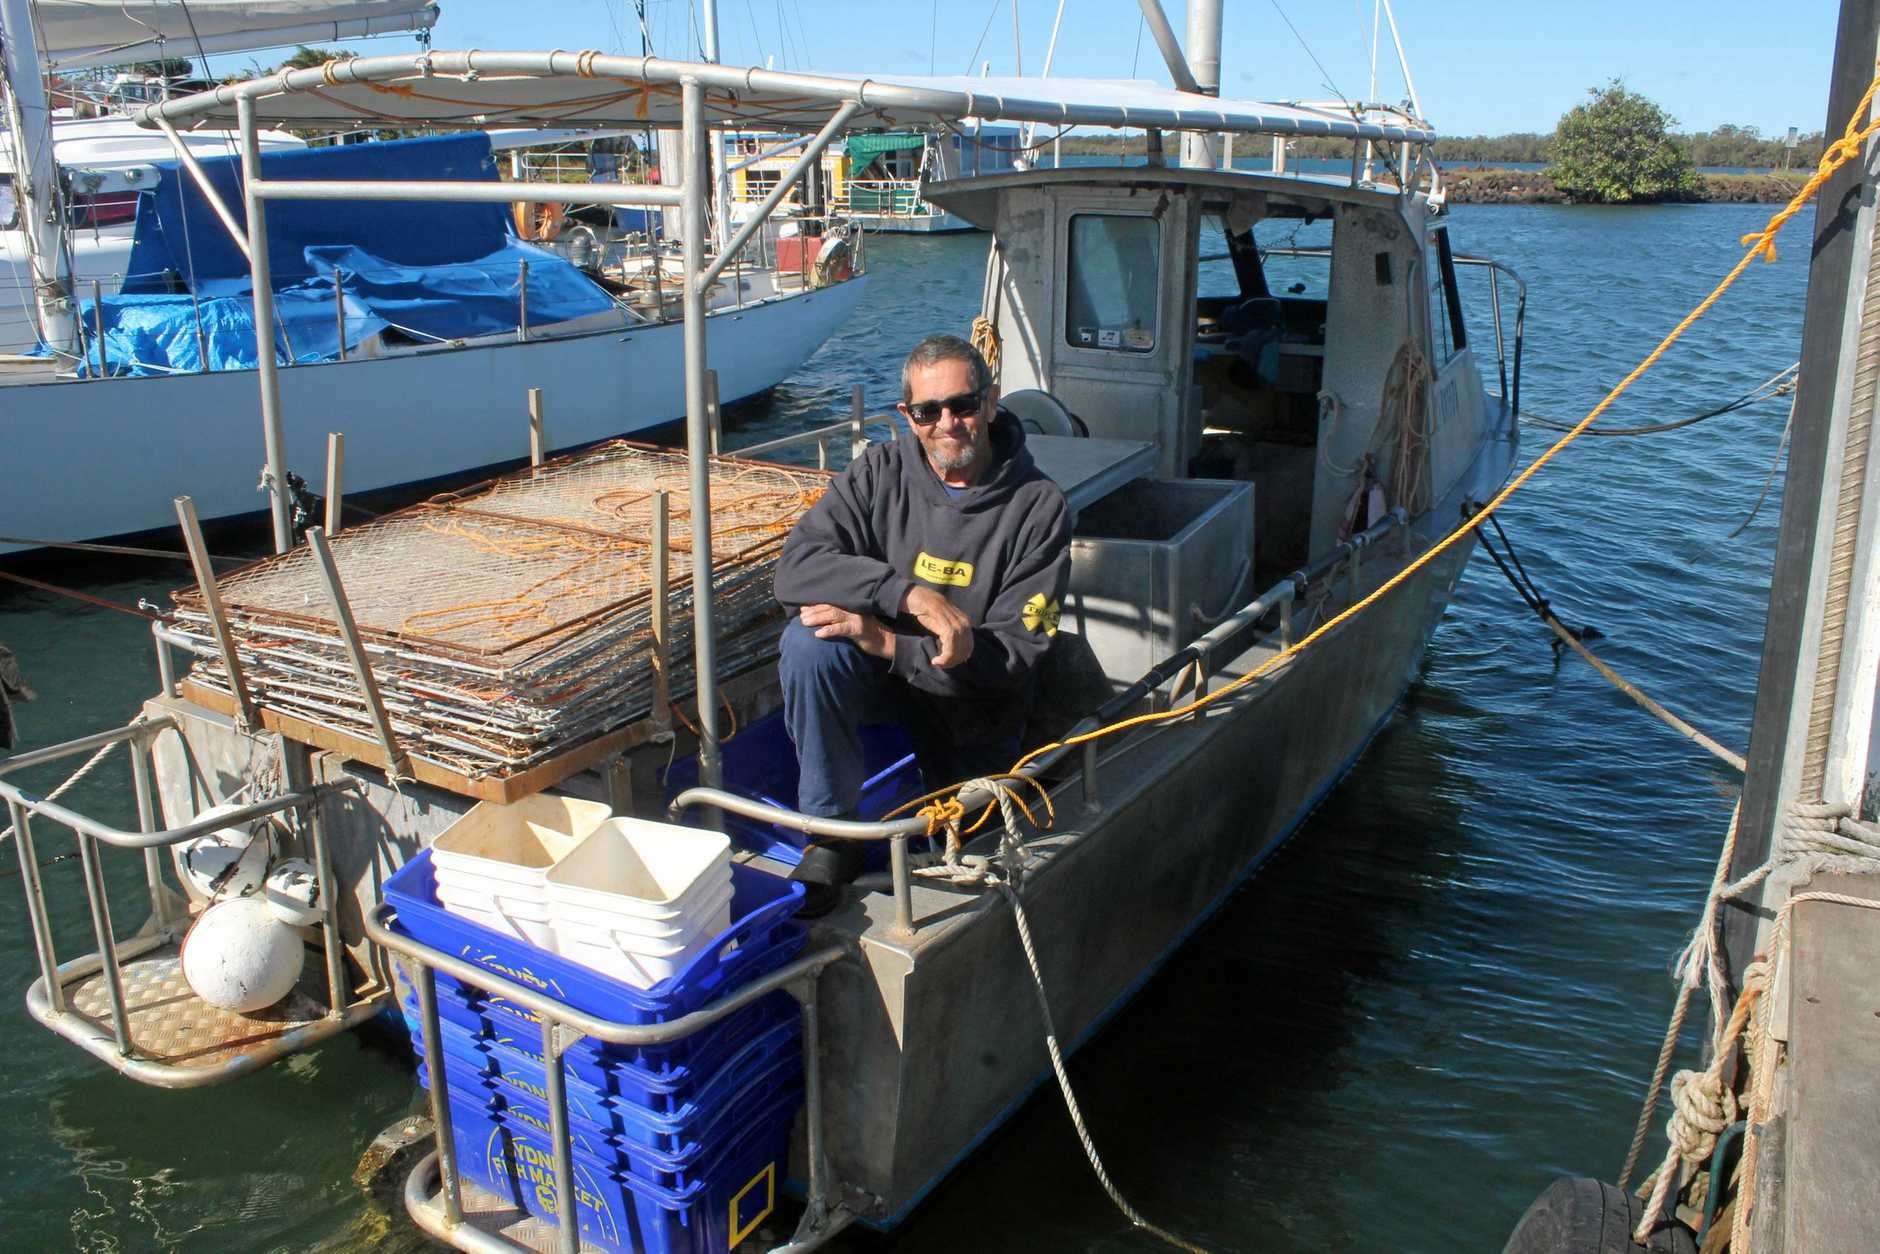 INDUSTRY THREAT: Ballina professional fisherman Cliff Corbett says quotas imposed on catches are threatening the industry.